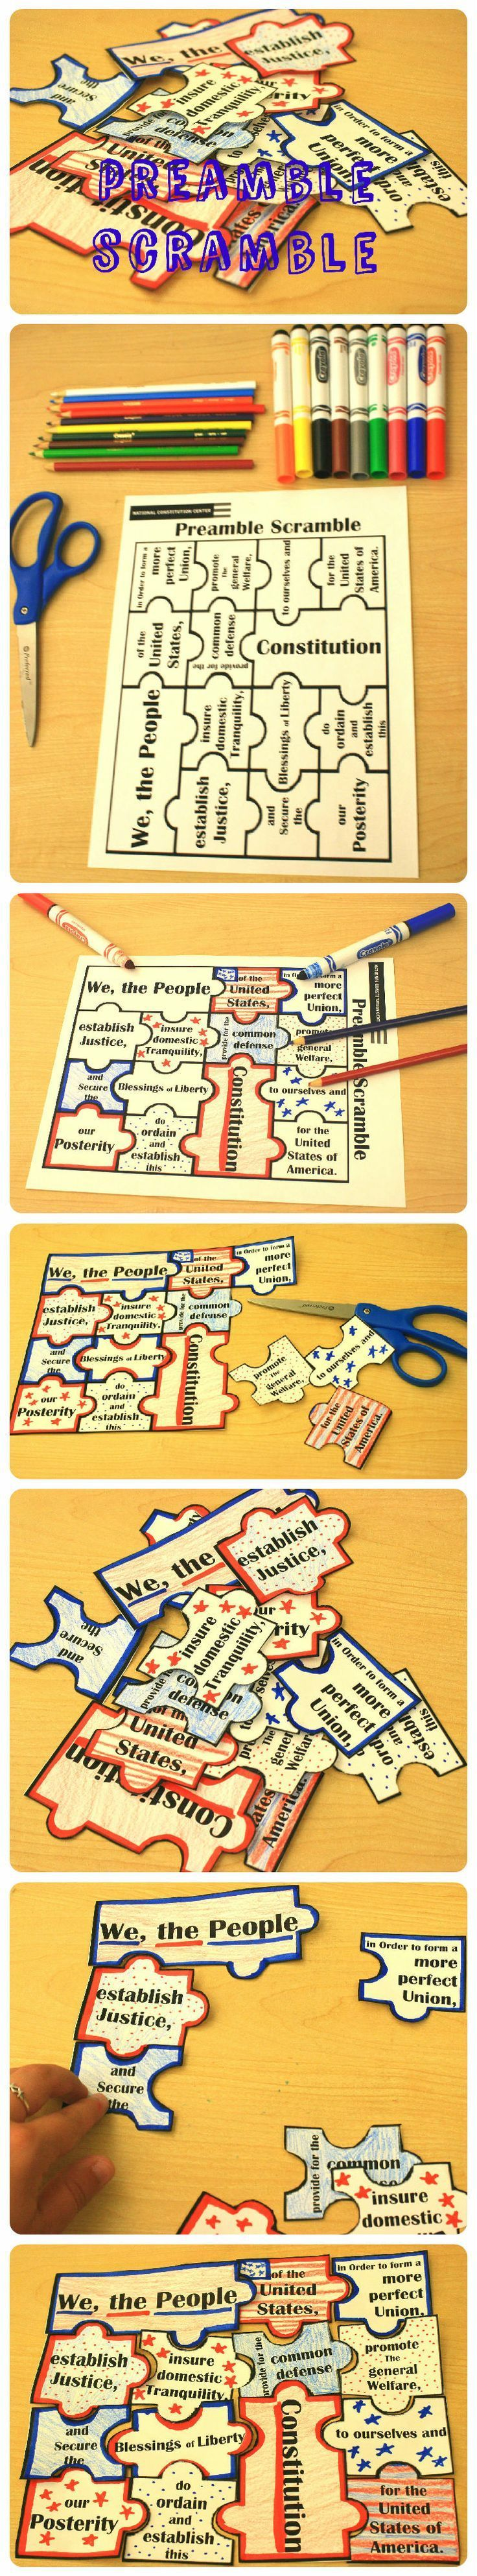 Have fun getting to know the phrases of the Preamble of the #Constitution while unscrambling your #DIY puzzle. Great for kids to personalize and decorate for #July4th